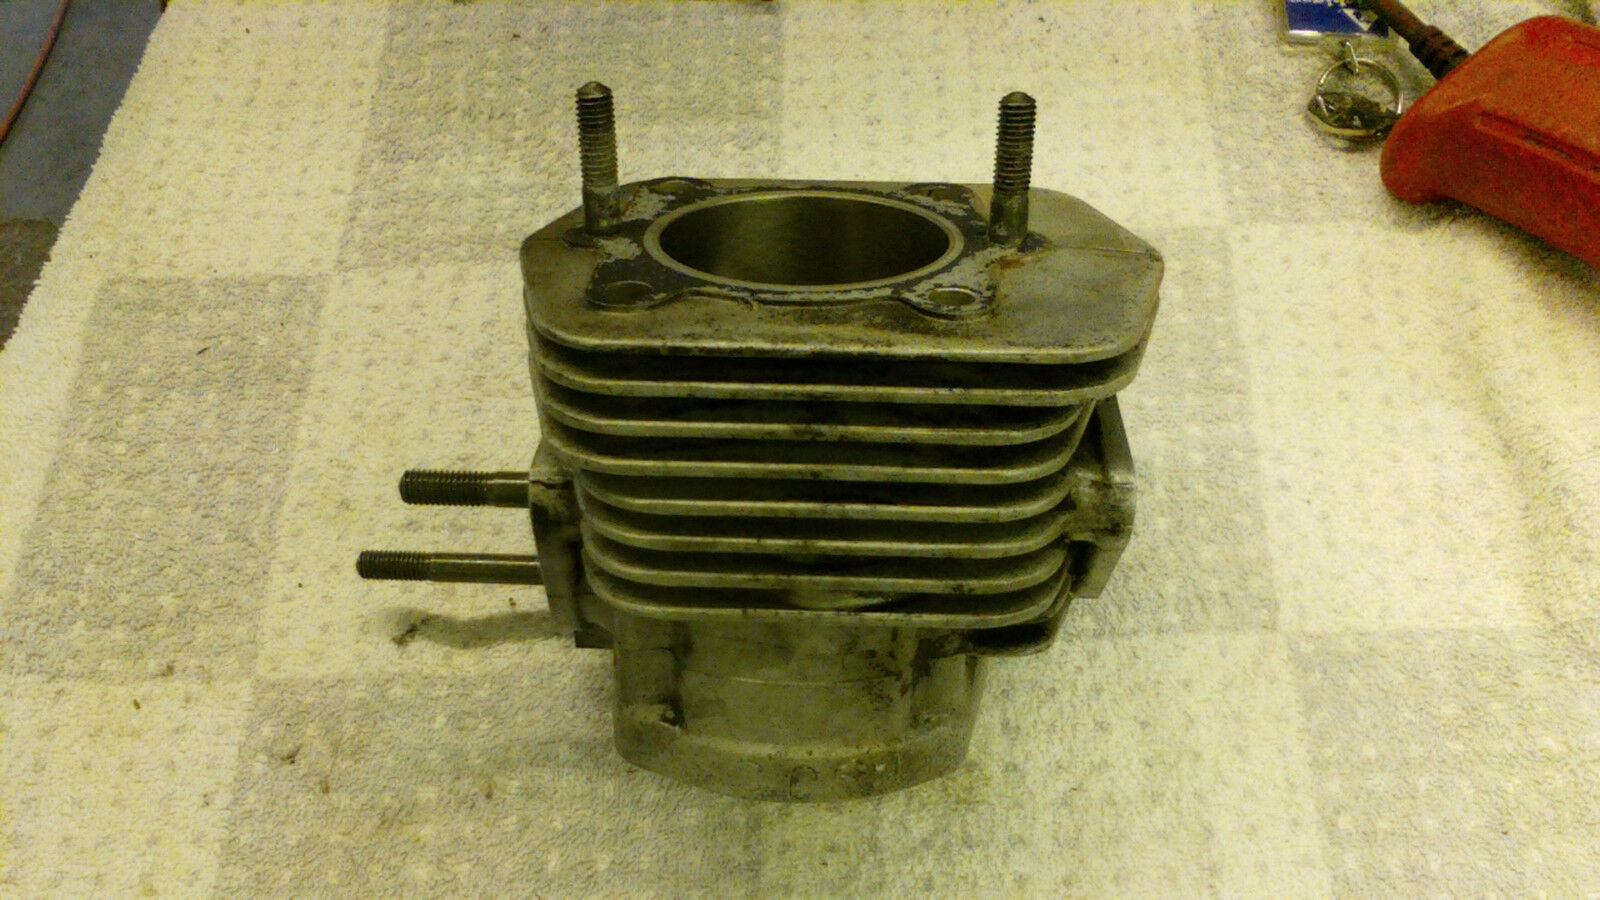 GOOD USED 1998 ARCTIC CAT JAG 340 SNOWMOBILE CYLINDER 3003-627